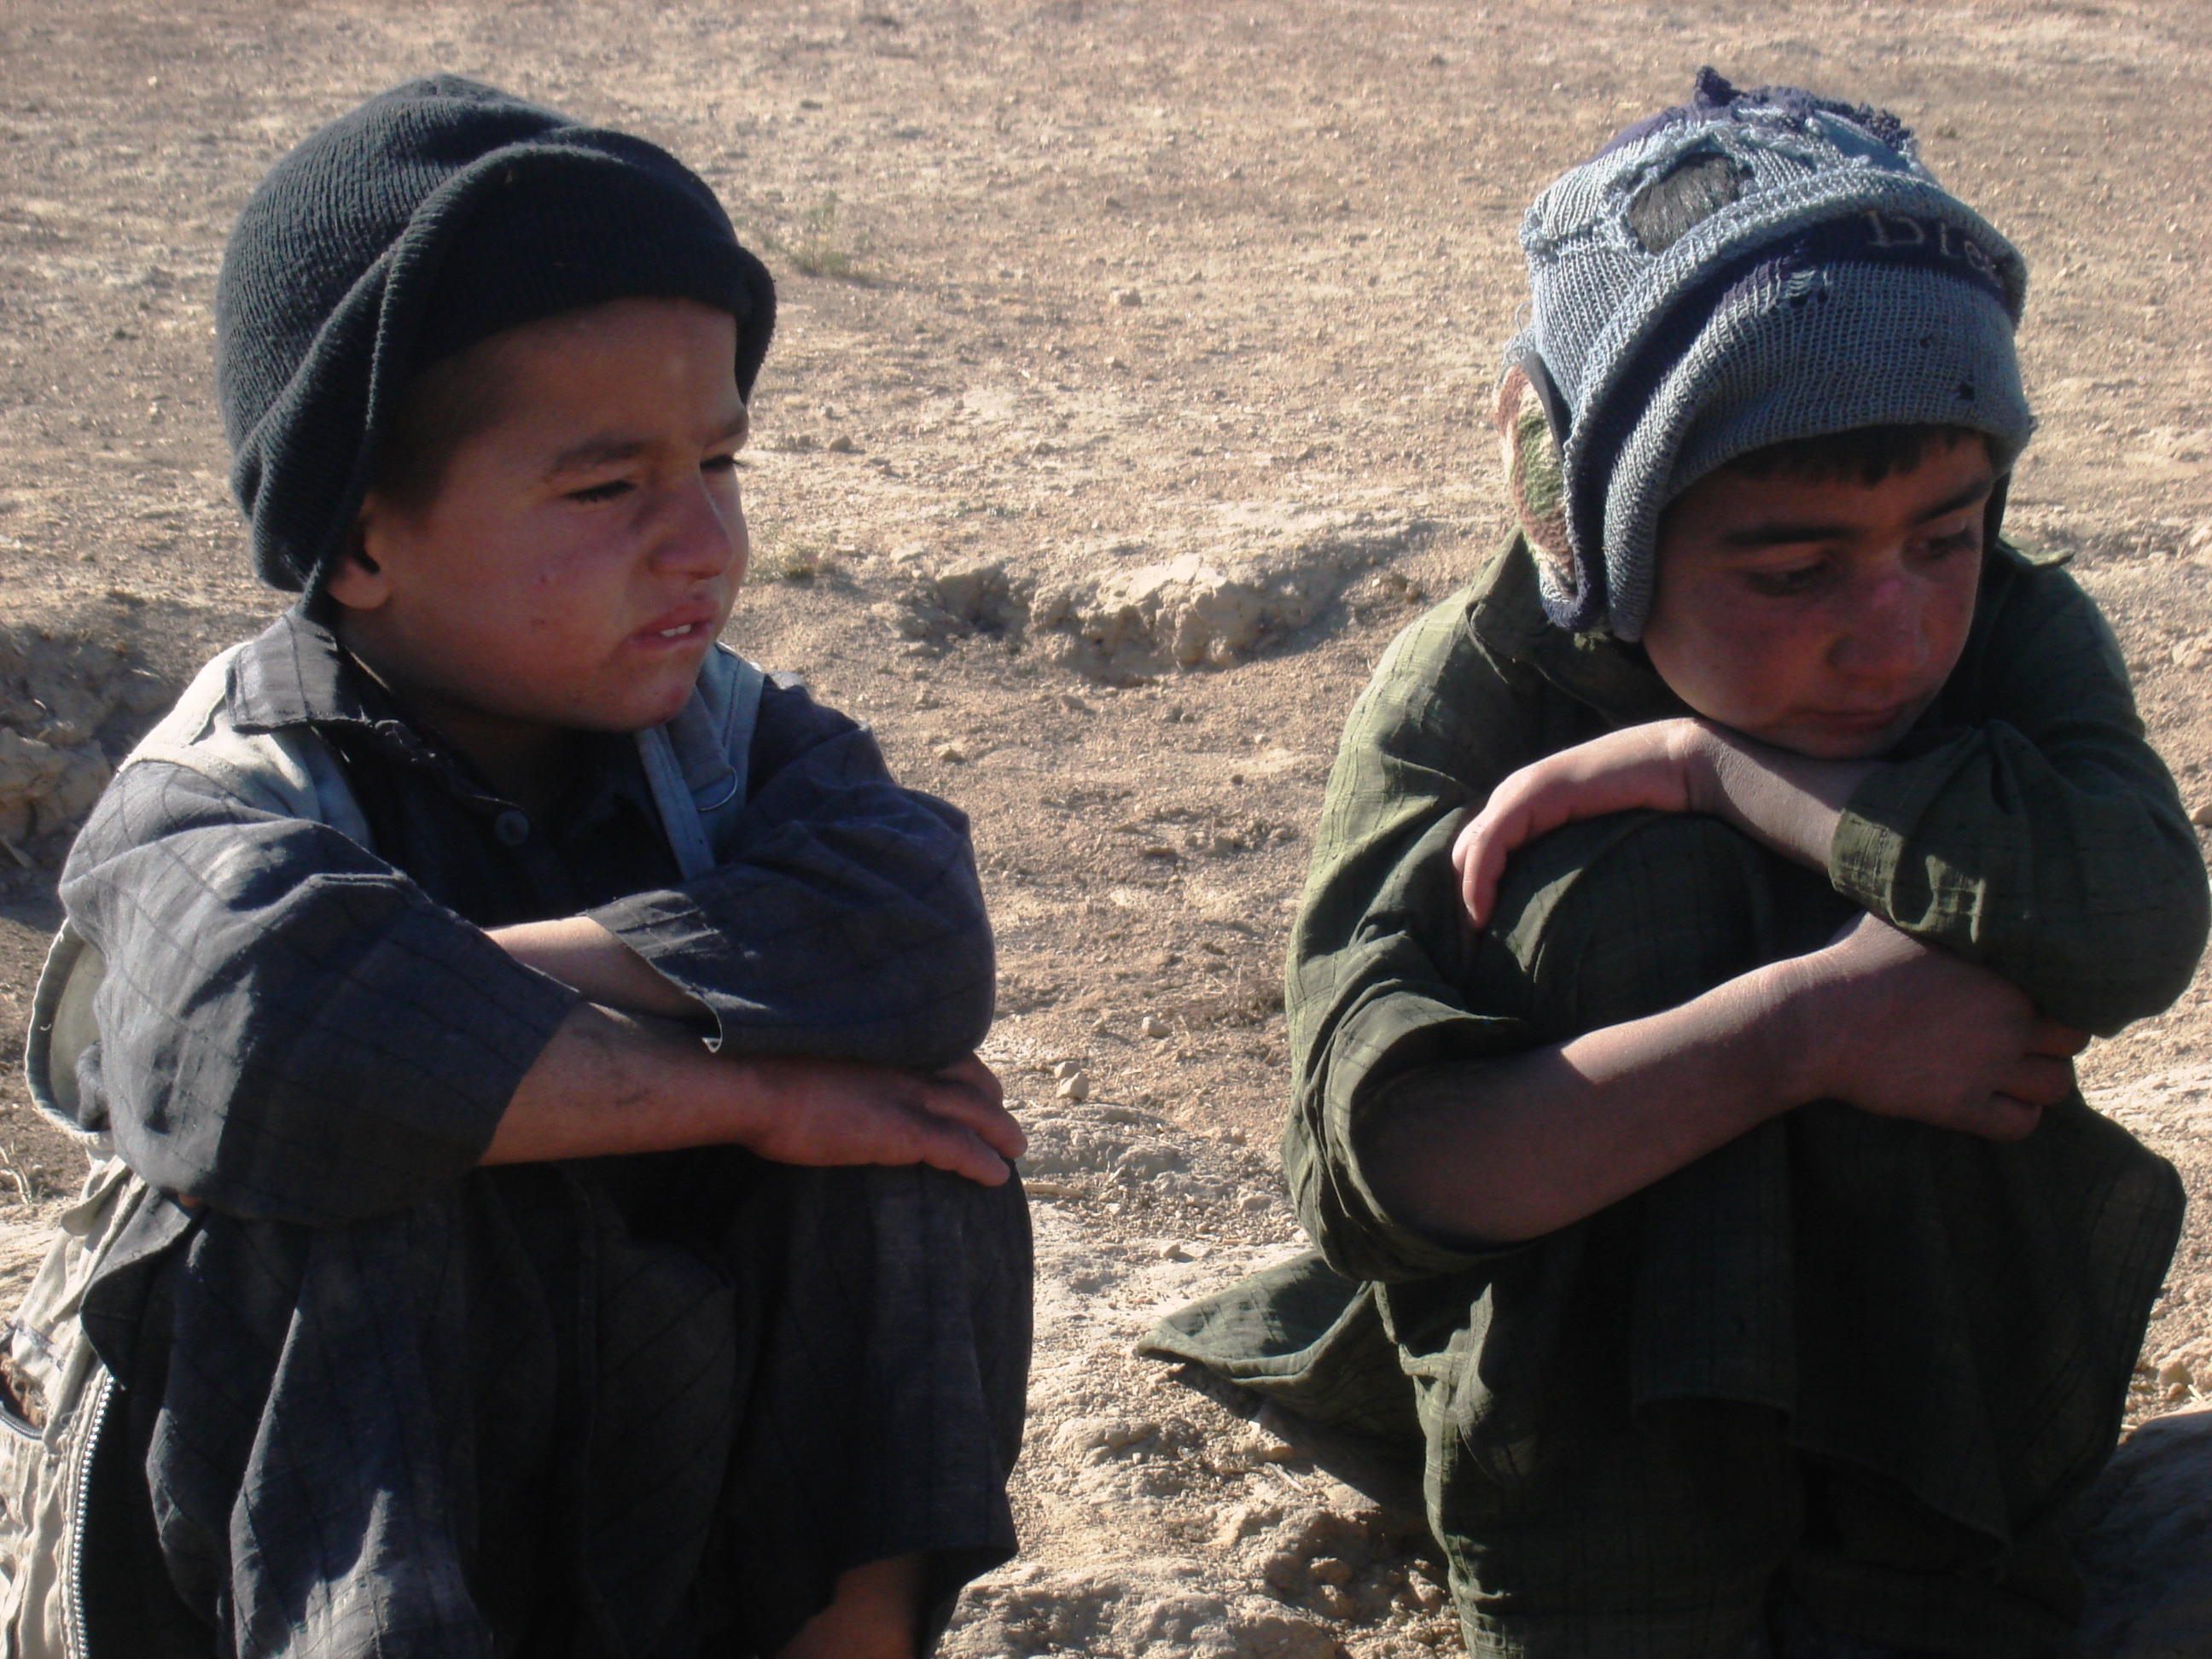 Rights groups say conflict has adversly impacted many children in Afghanistan